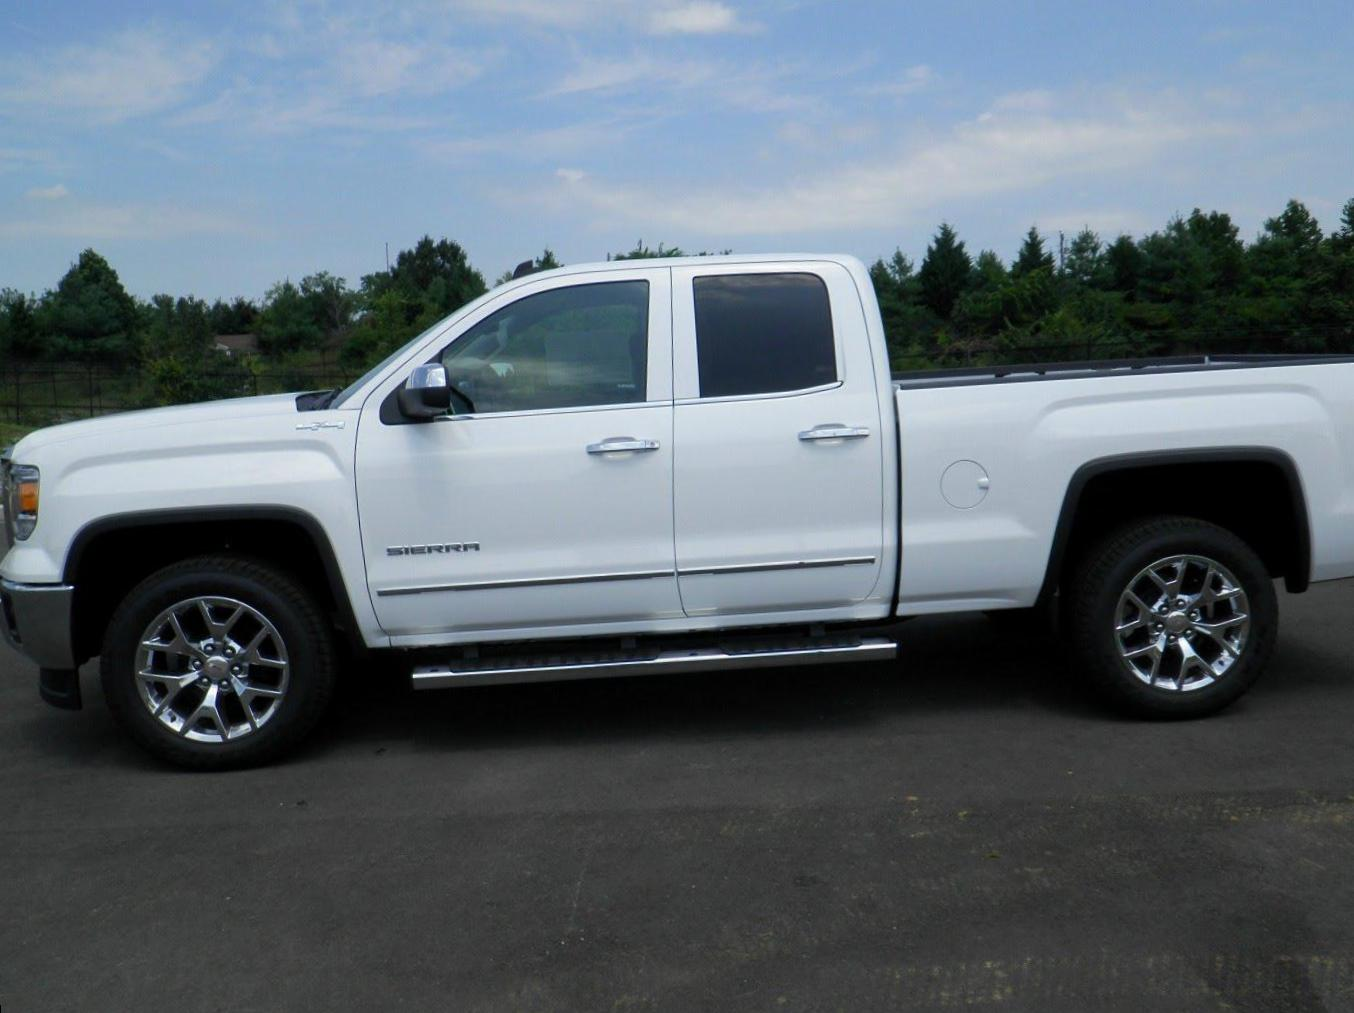 Sierra Double Cab GMC approved hatchback